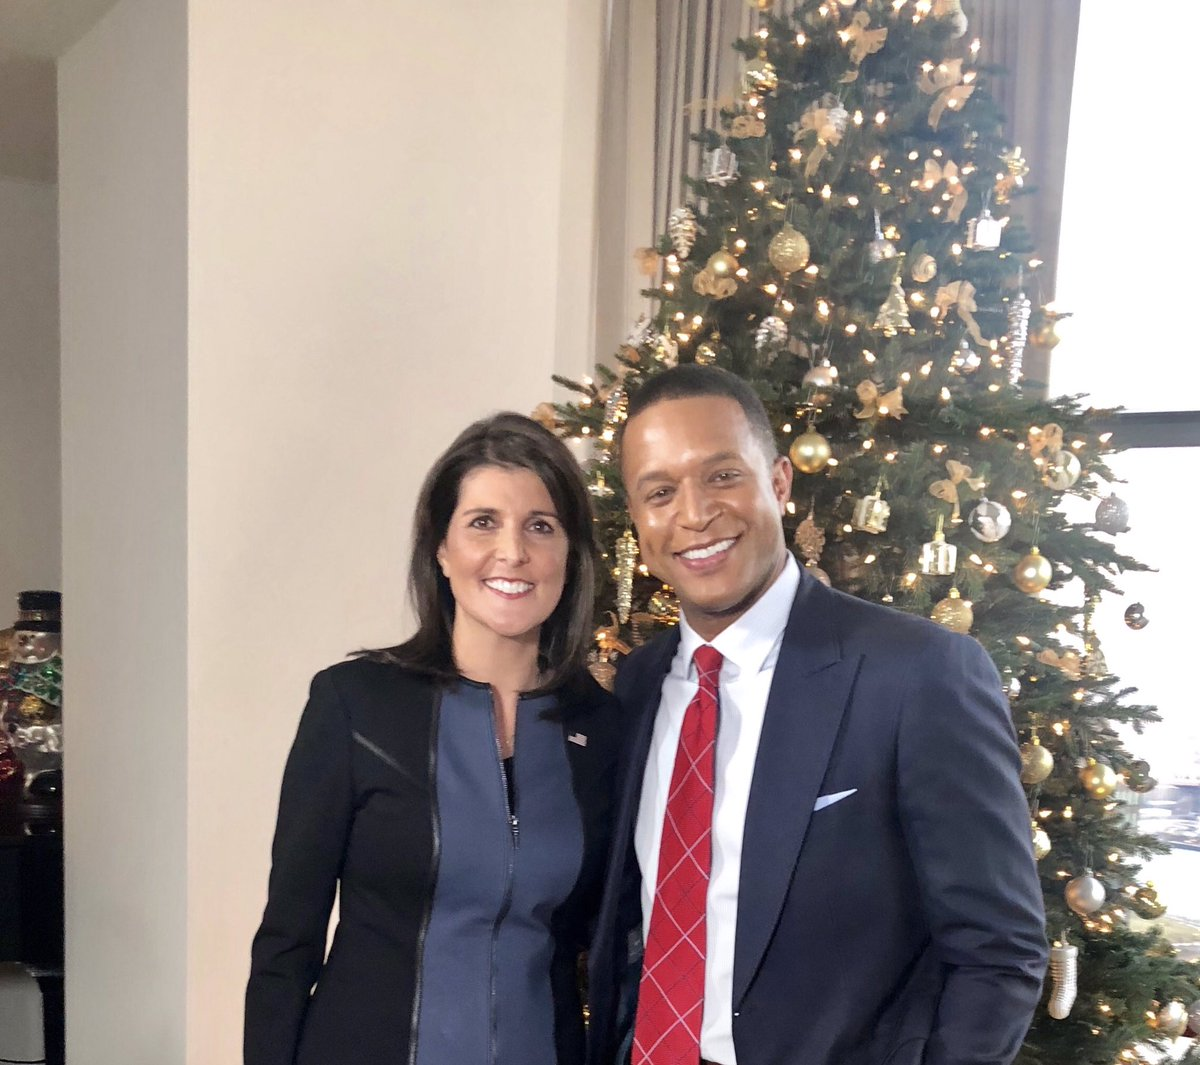 Always great to hang out with my friend and fellow South Carolinian, @craigmelvin. So proud of his success! #SCPride<br>http://pic.twitter.com/5lcCImAY7T